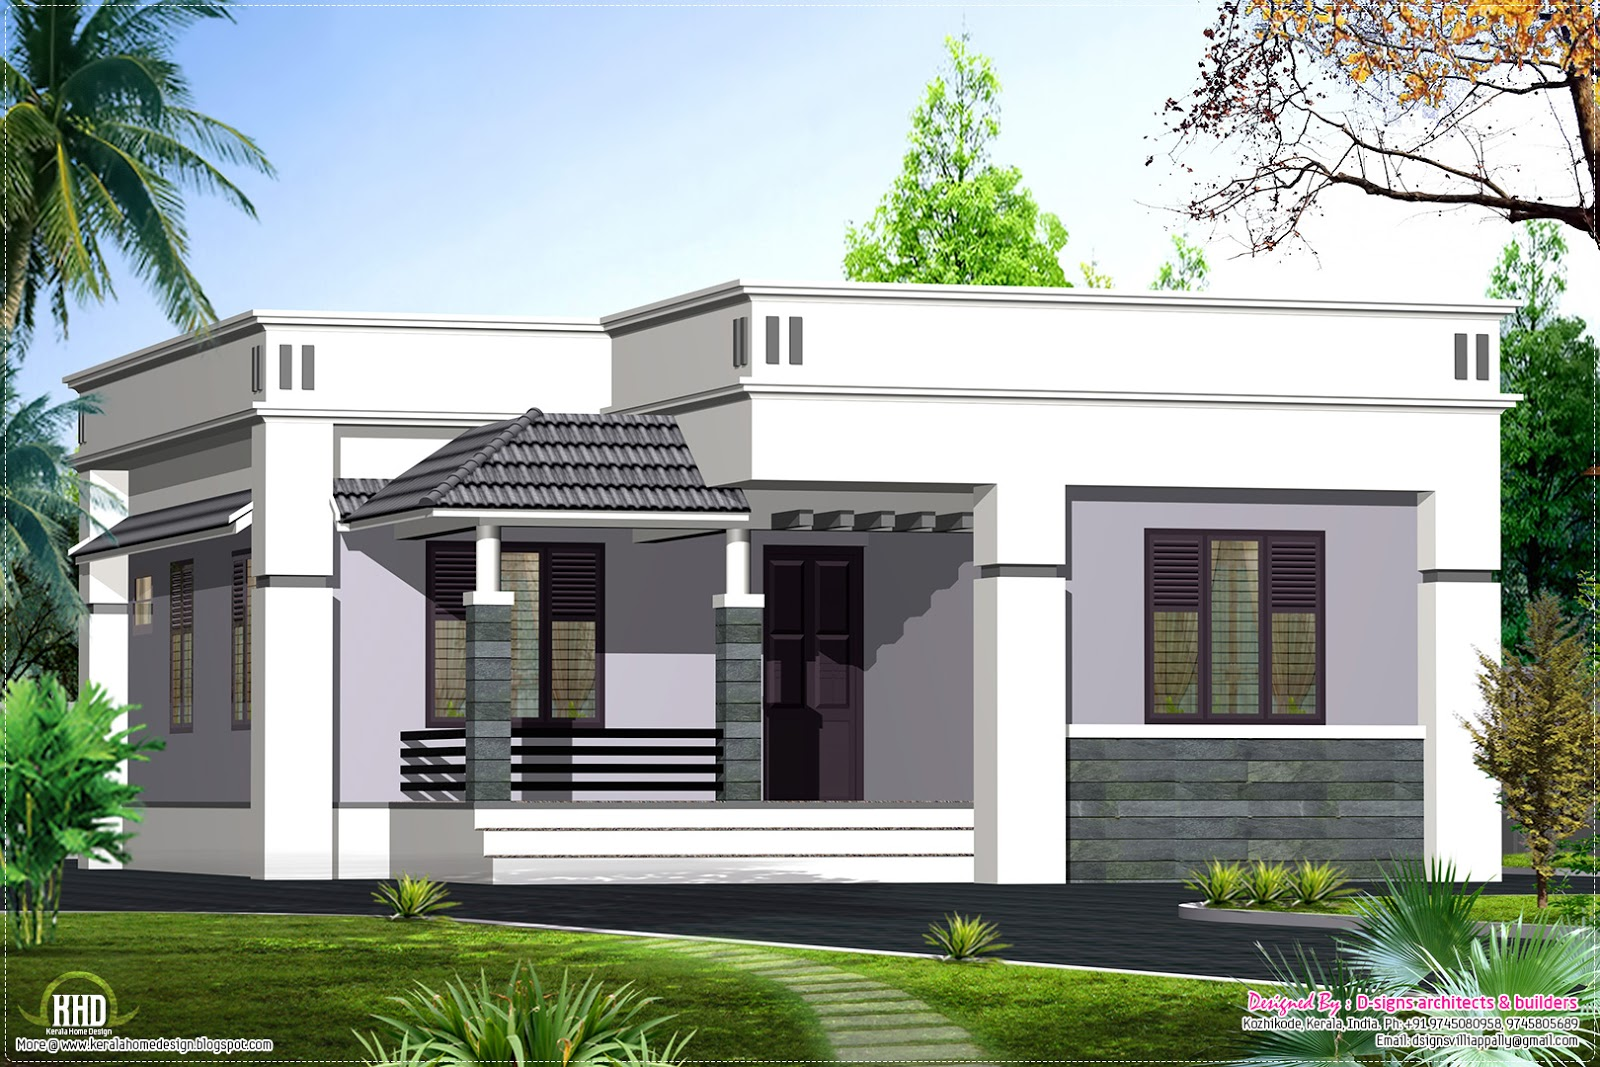 one floor house design 1100 home kerala plans. Black Bedroom Furniture Sets. Home Design Ideas